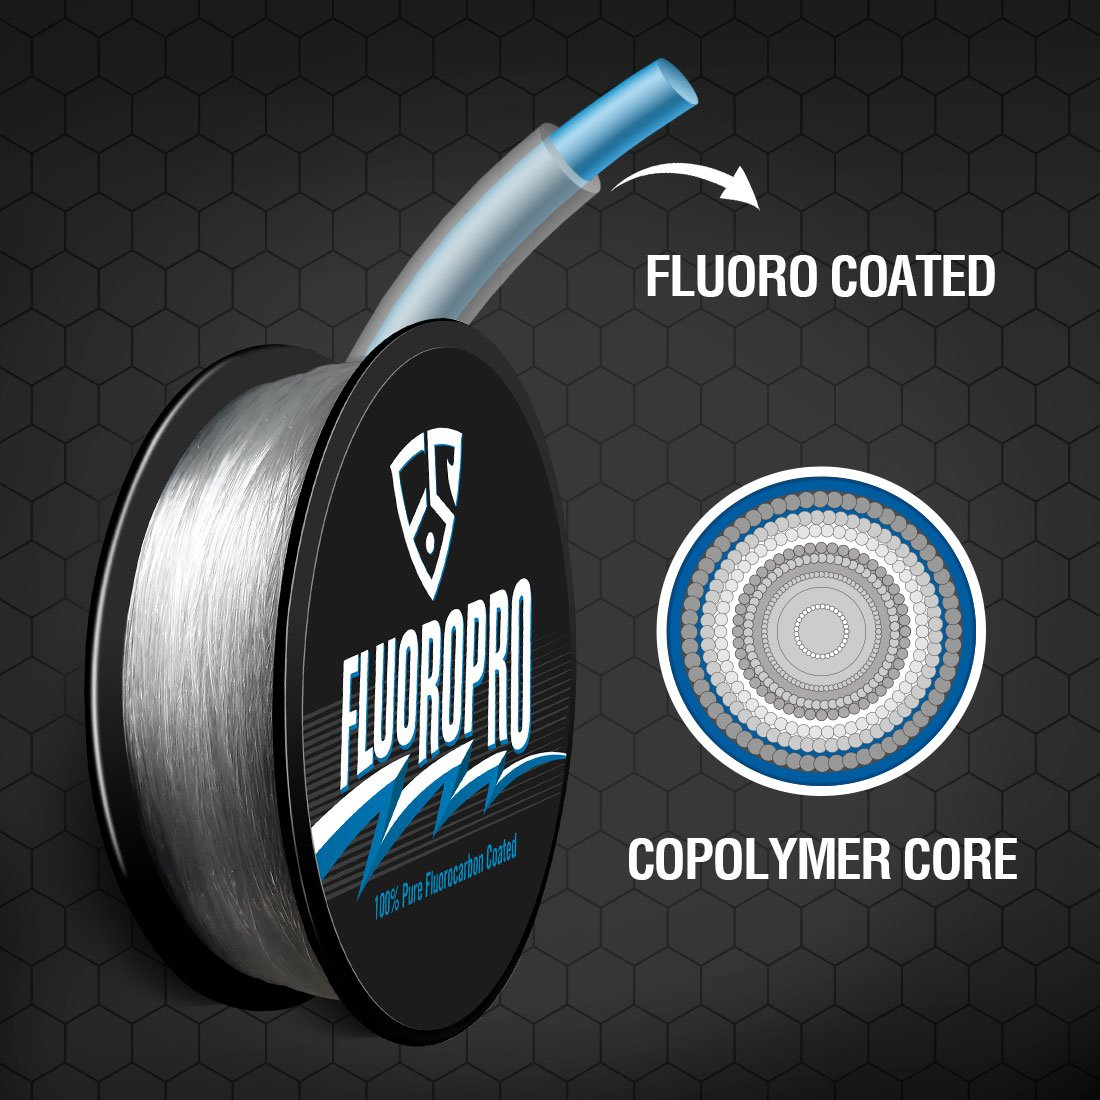 329Yds Low Stretch High Strength Clear Fluorocarbon Fishing Line 2-50LB FISHINGSIR FluoroPro 100/% Pure Fluorocarbon Coated Fishing Line